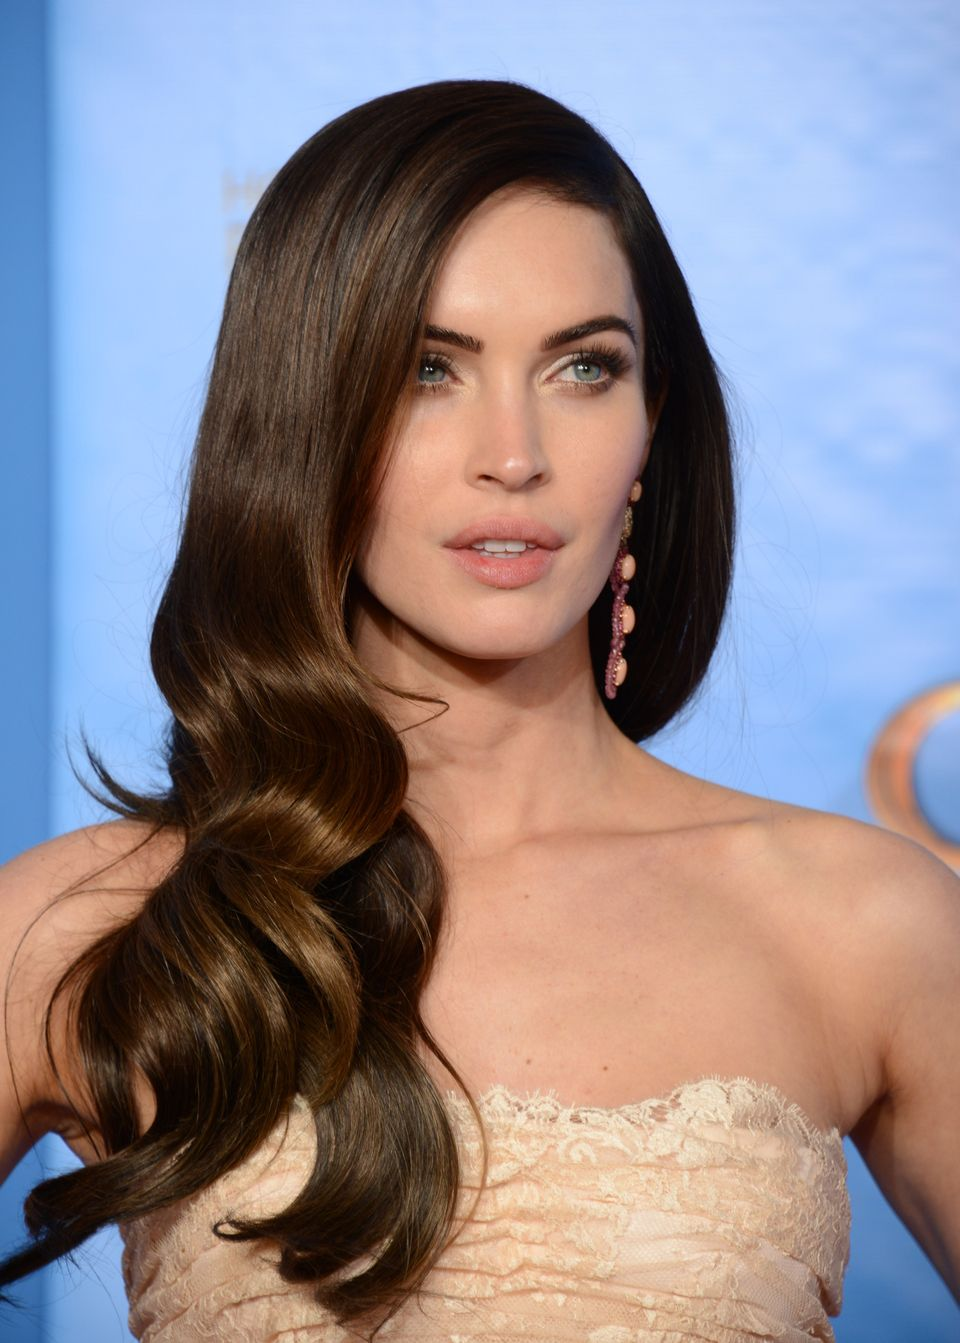 "In a 2011 <a href=""http://www.esquire.com/women/women-we-love/megan-fox-pics-0609"" target=""_blank"">Esquire</a>&nbsp;interview"